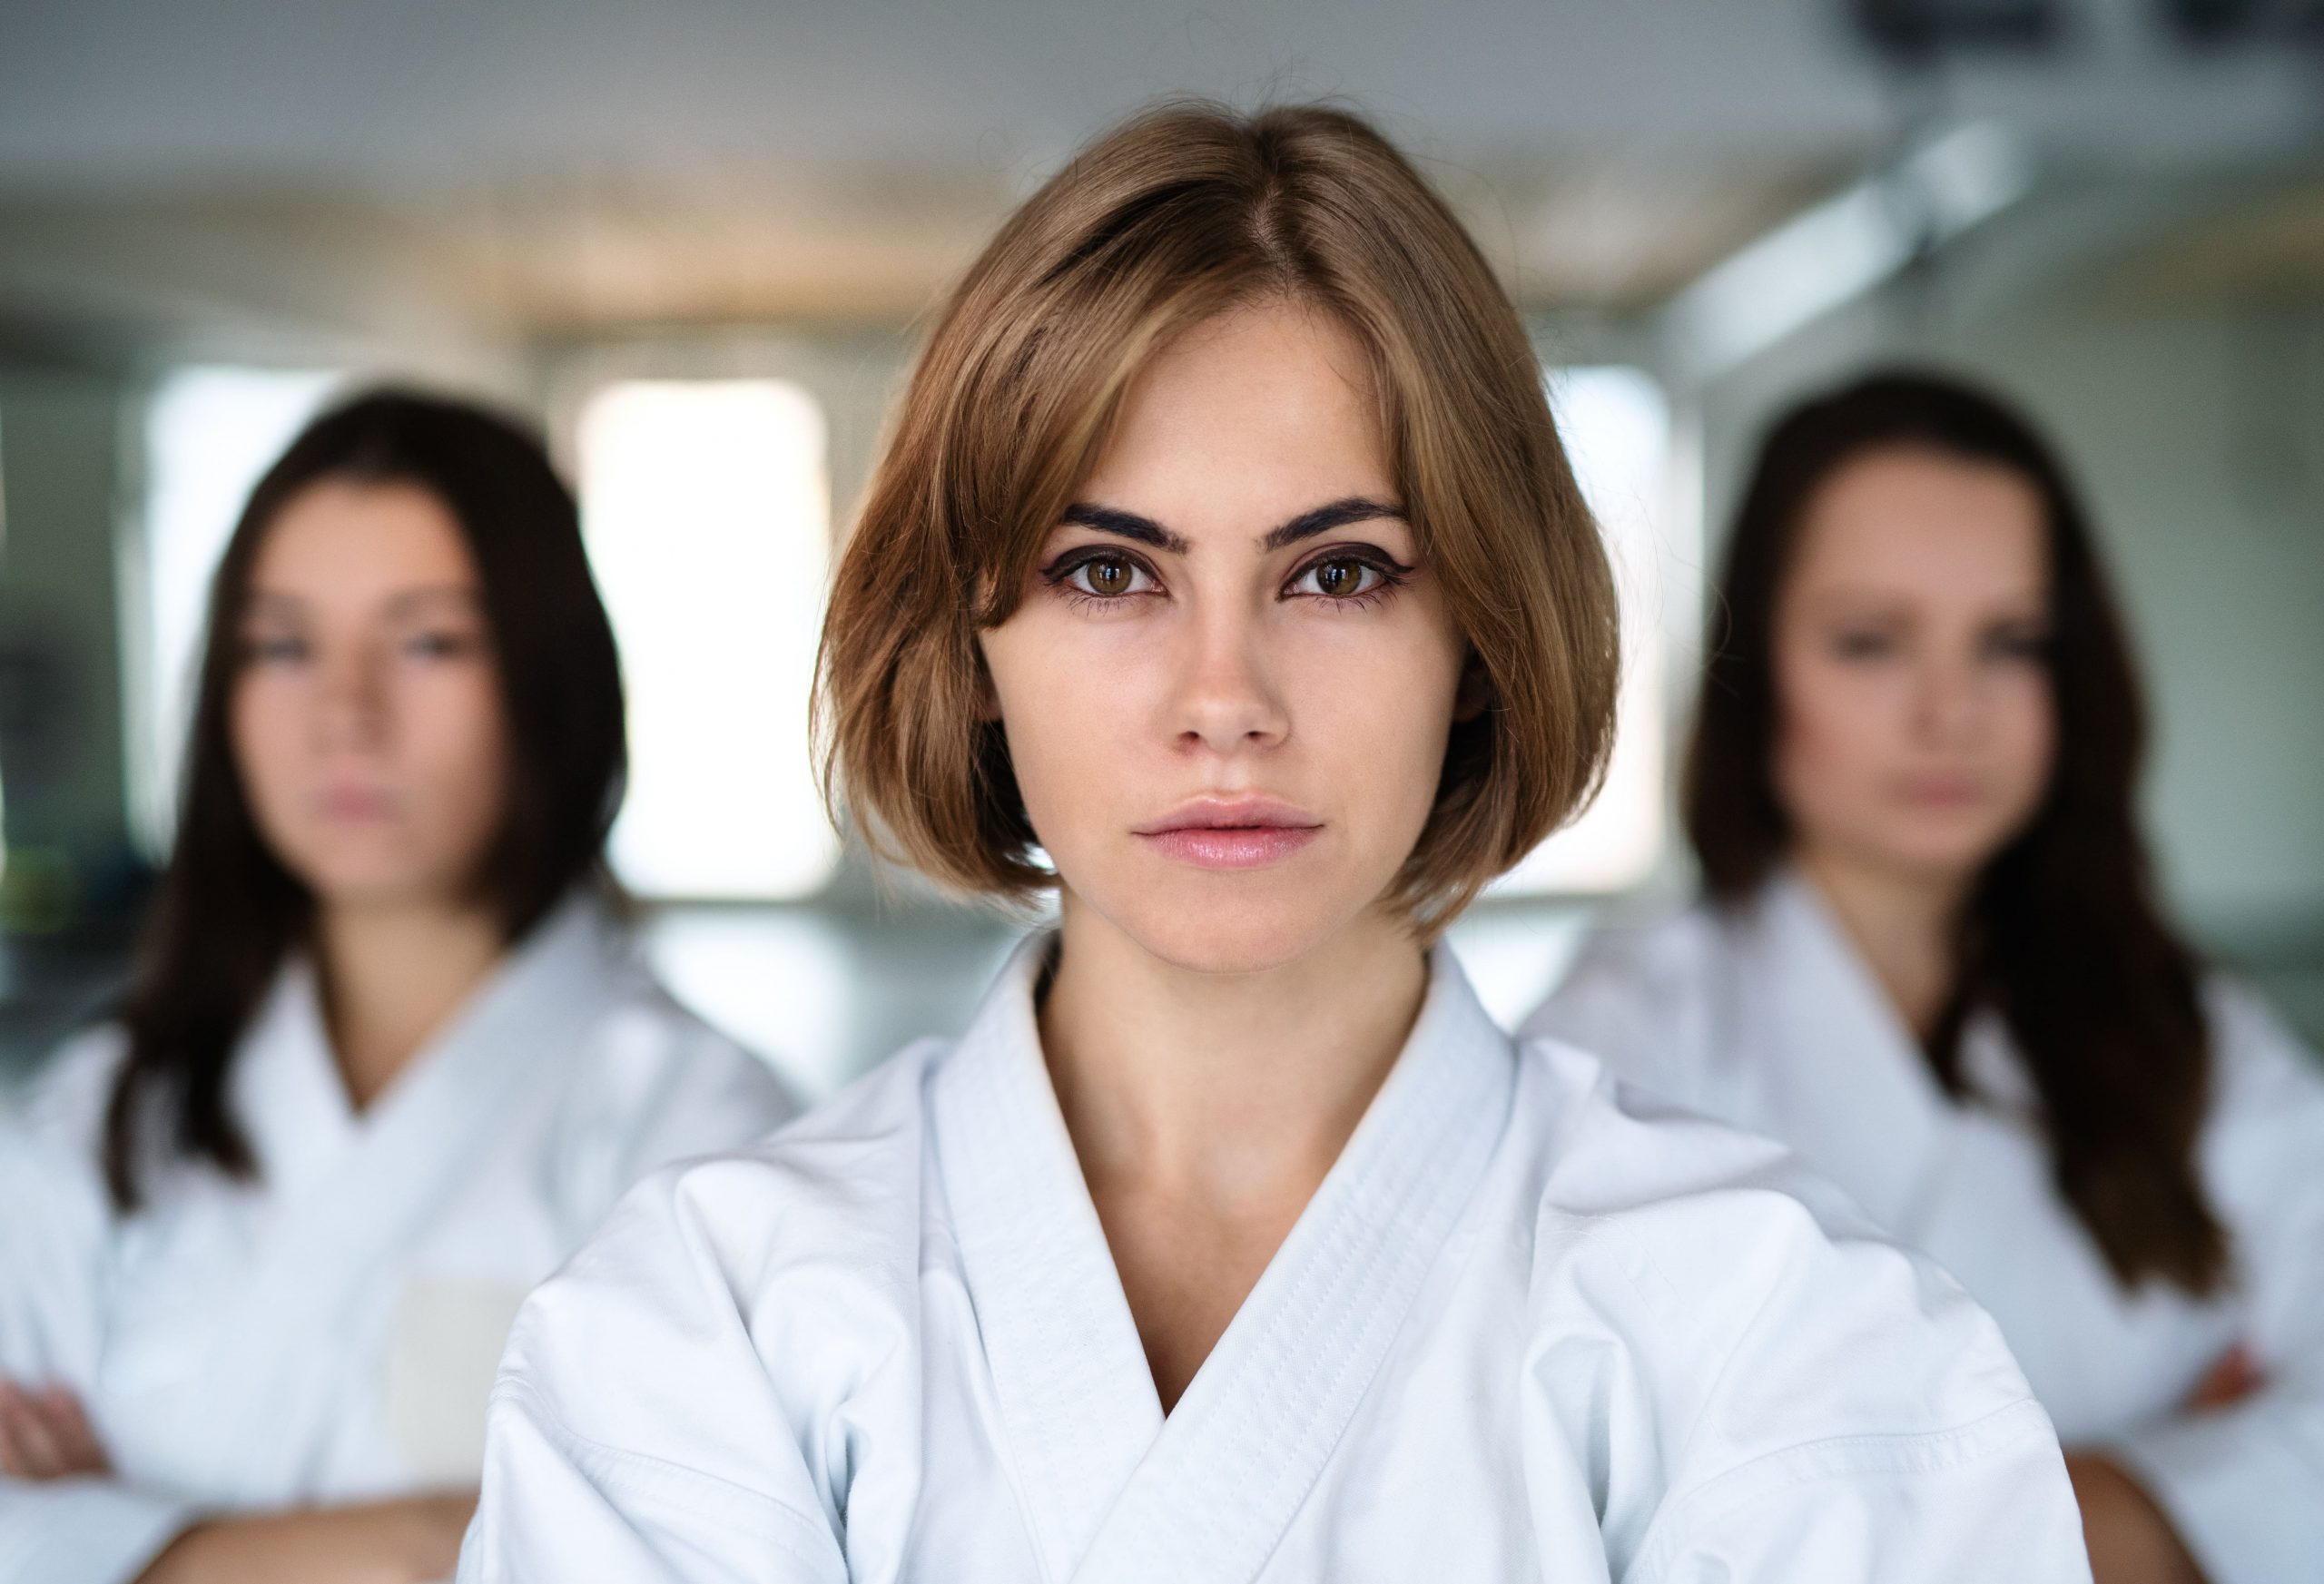 Group of potential egg donors practicing karate in free time